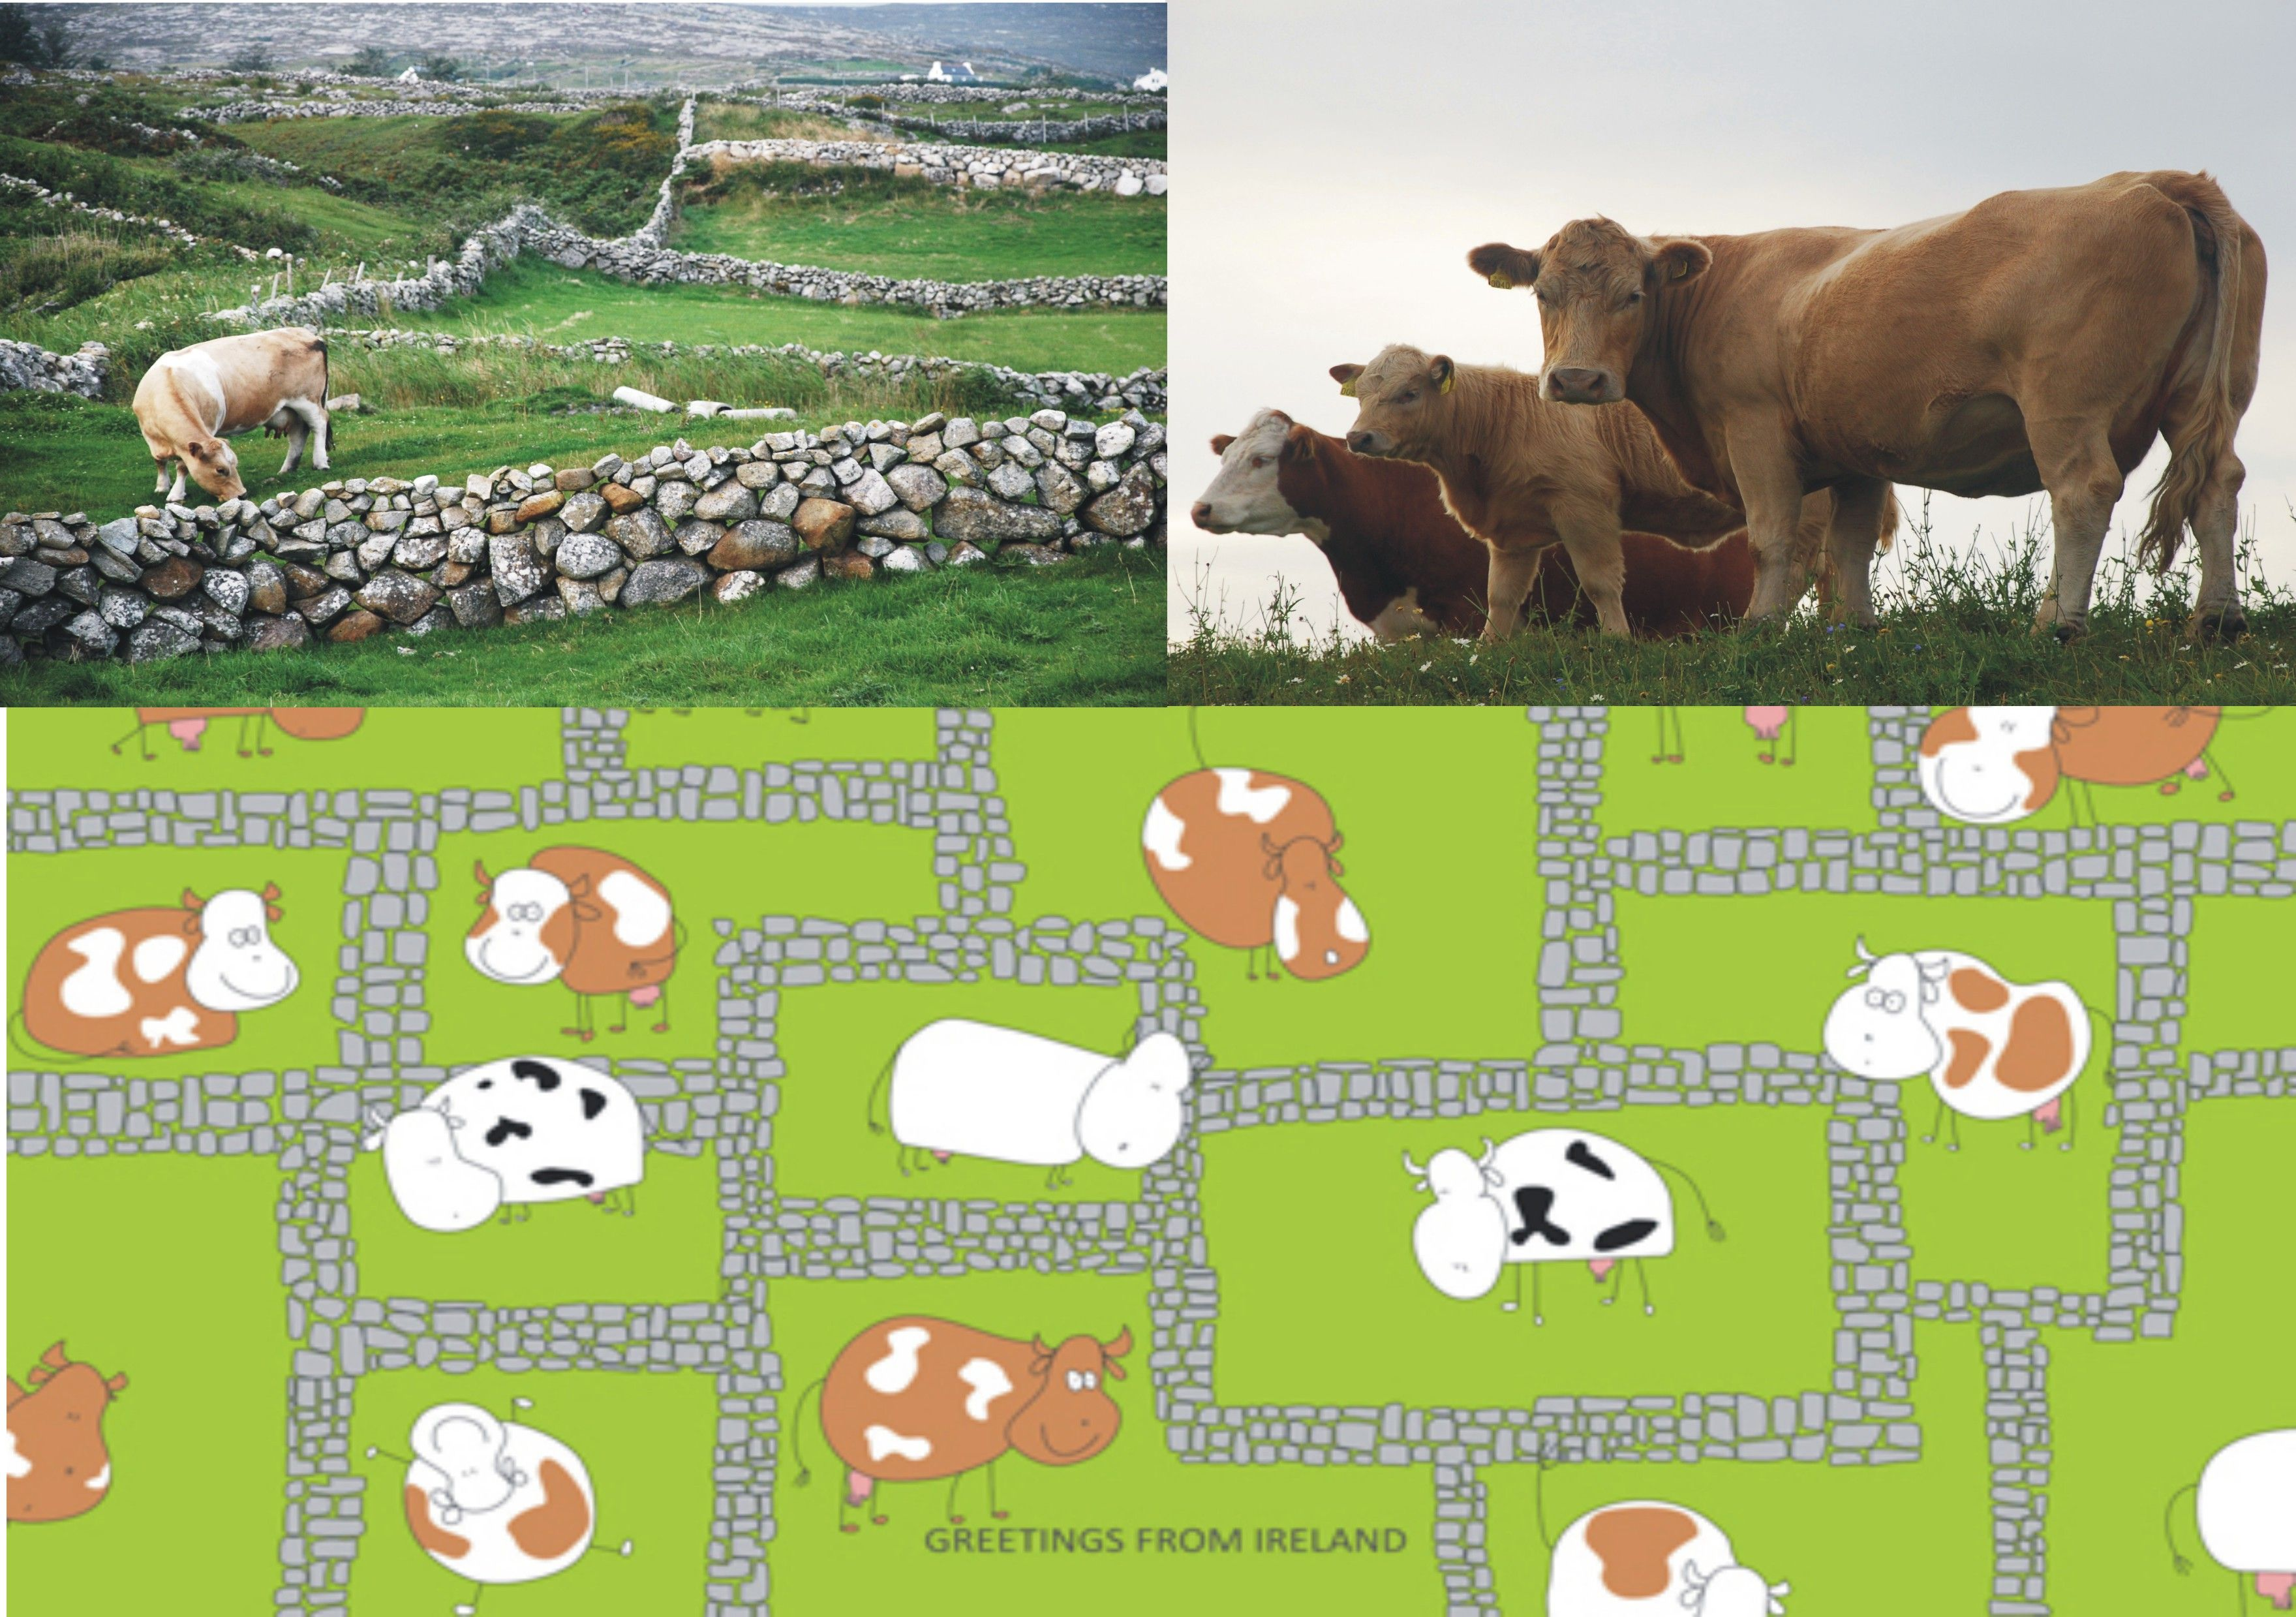 An example of how you could get inspired in Ireland. Cow there has only little square but is happy there:)